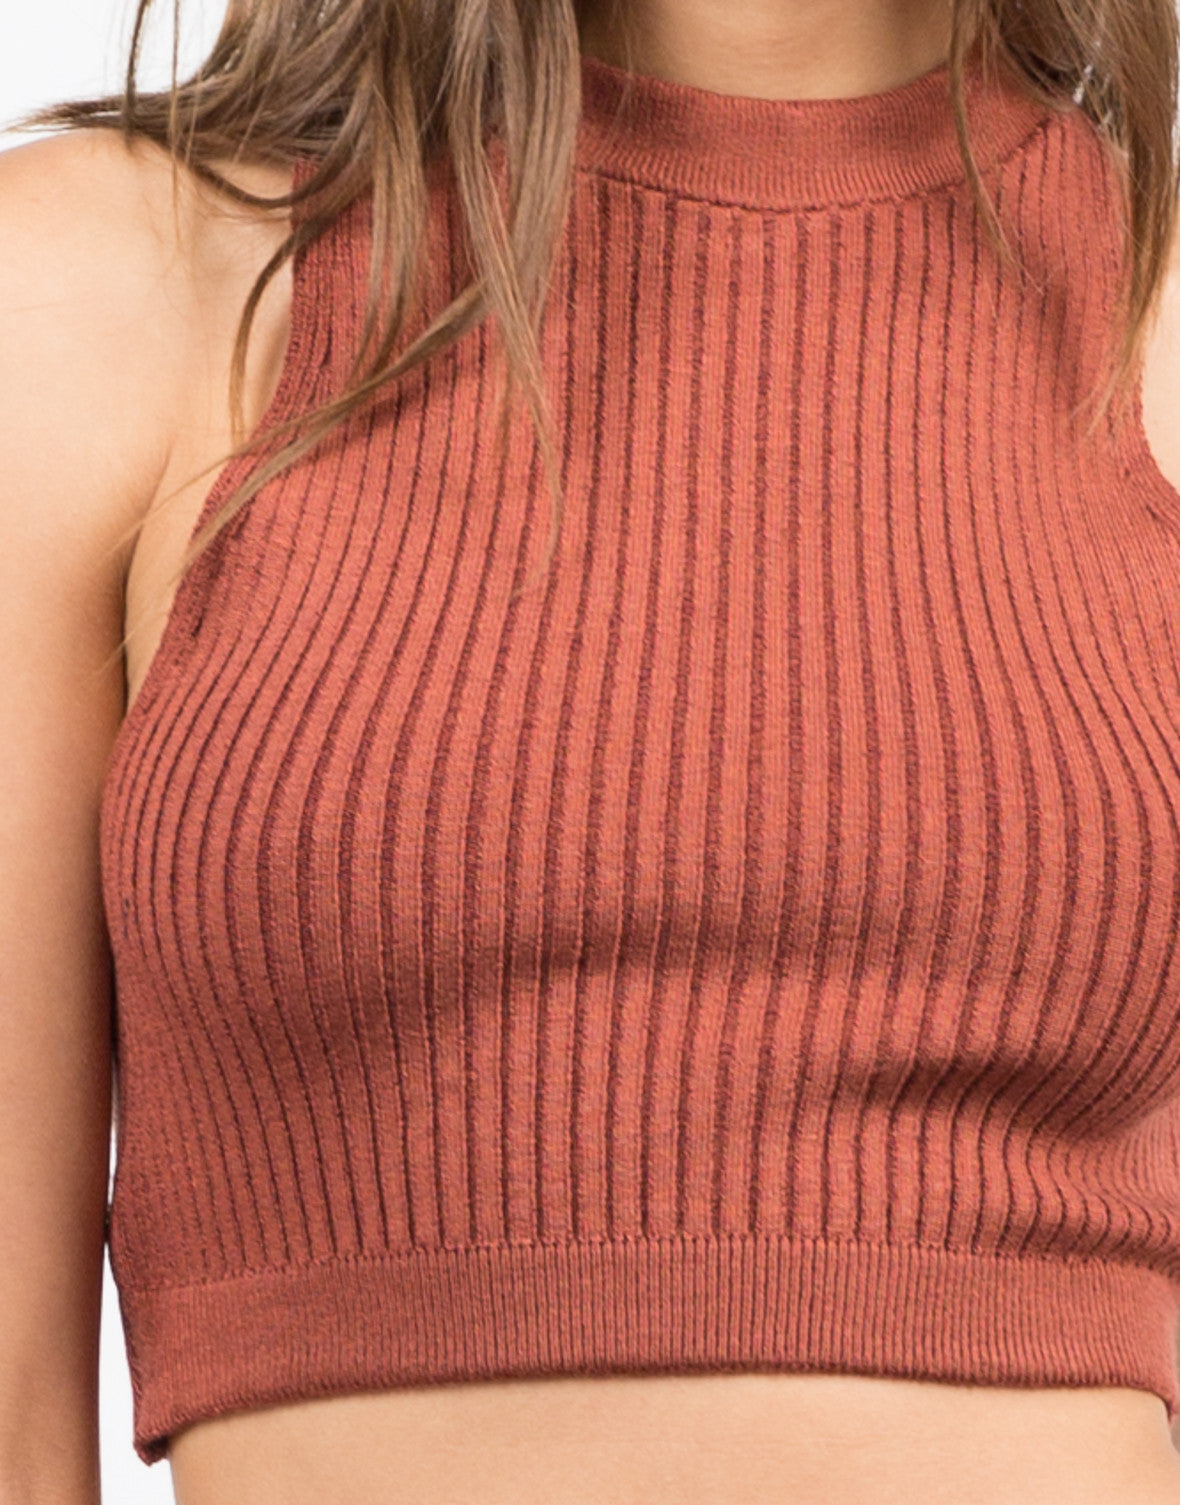 Detail of Ribbed Mock Neck Cropped Top - Brick